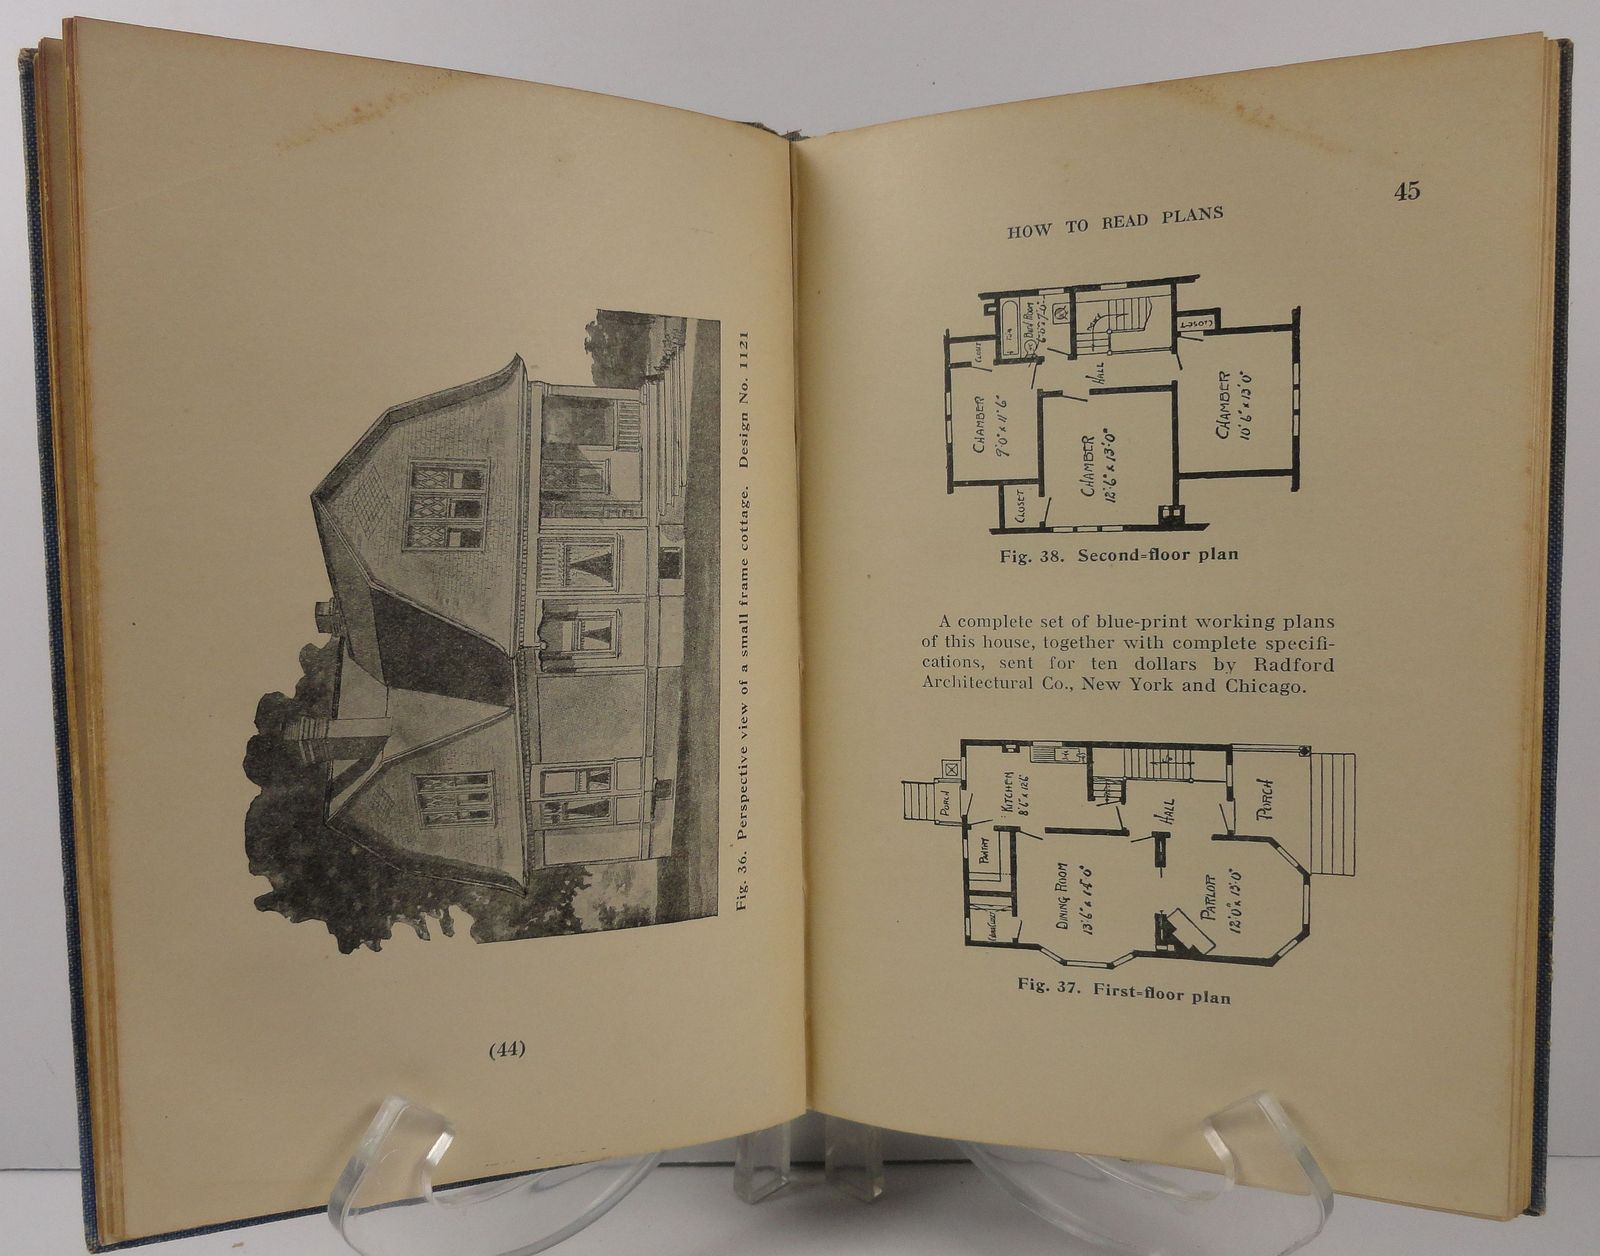 How to Read Plans by Charles G. Peker 1911 Industrial Book